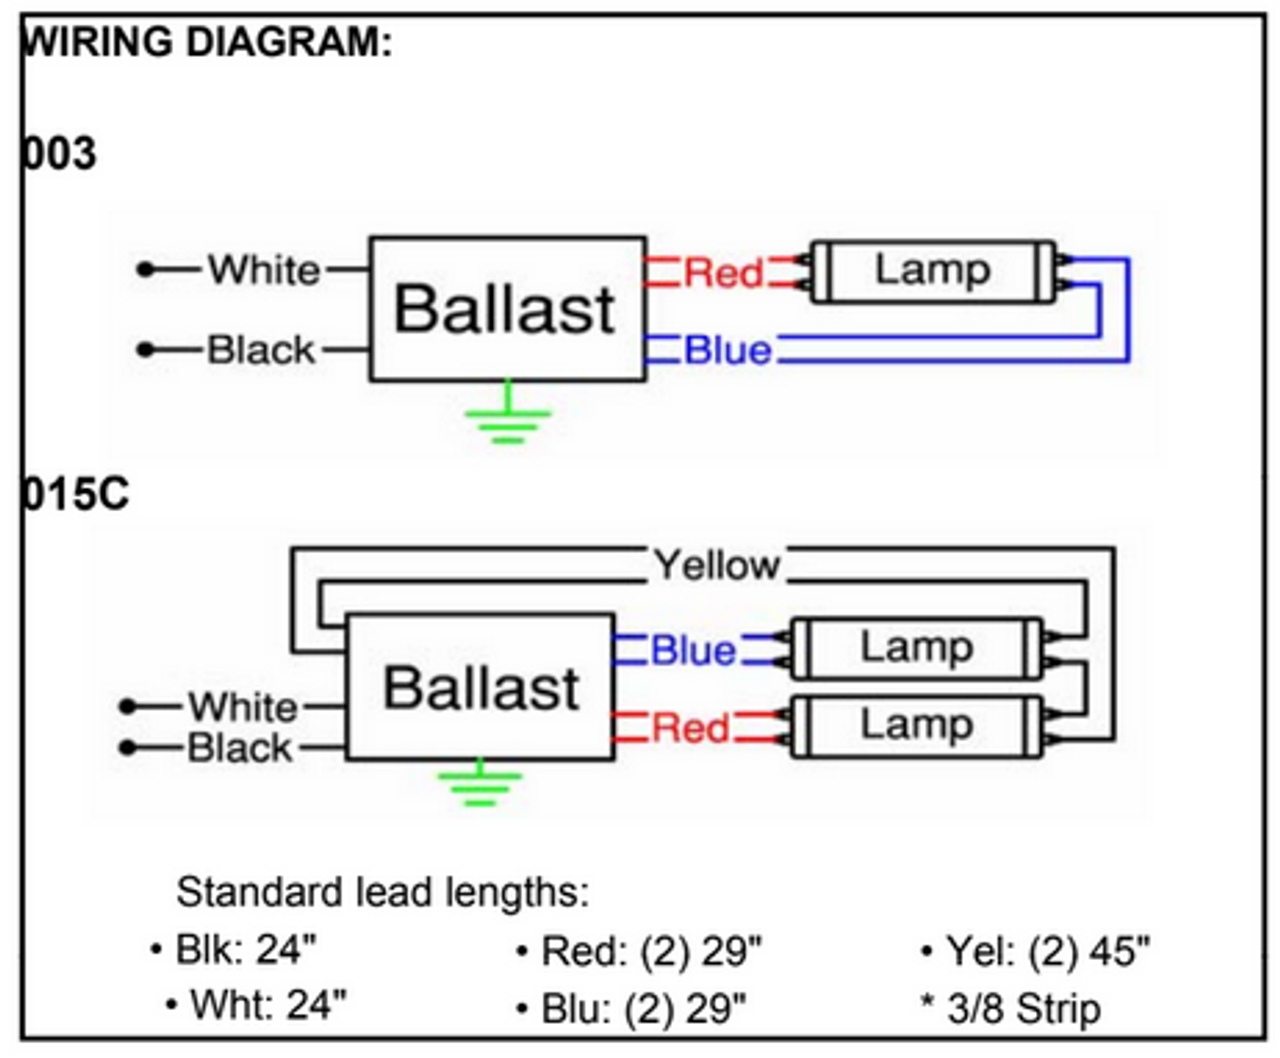 t12 ballast wiring diagram 1 lamp and 2 lamp fluorescent ballast wiring diagrams psa228t5mv robertson t5 fluorescent ballast robertson ballast wiring diagram #3